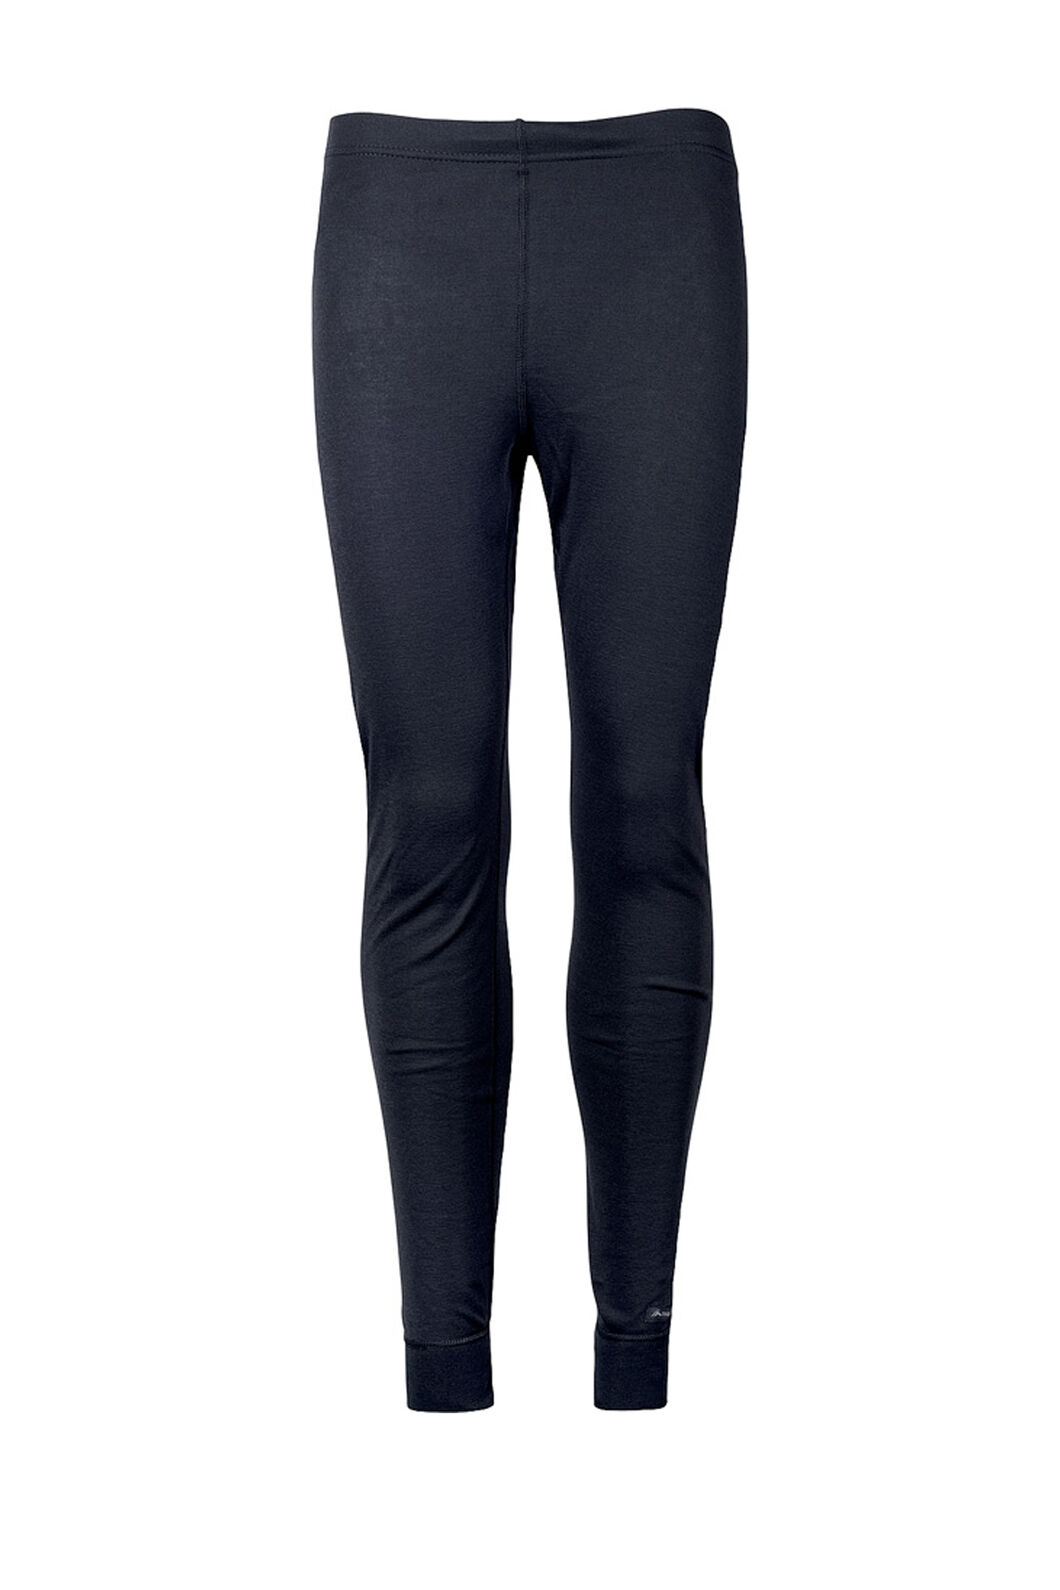 Macpac Geothermal Long Johns — Women's, Black, hi-res